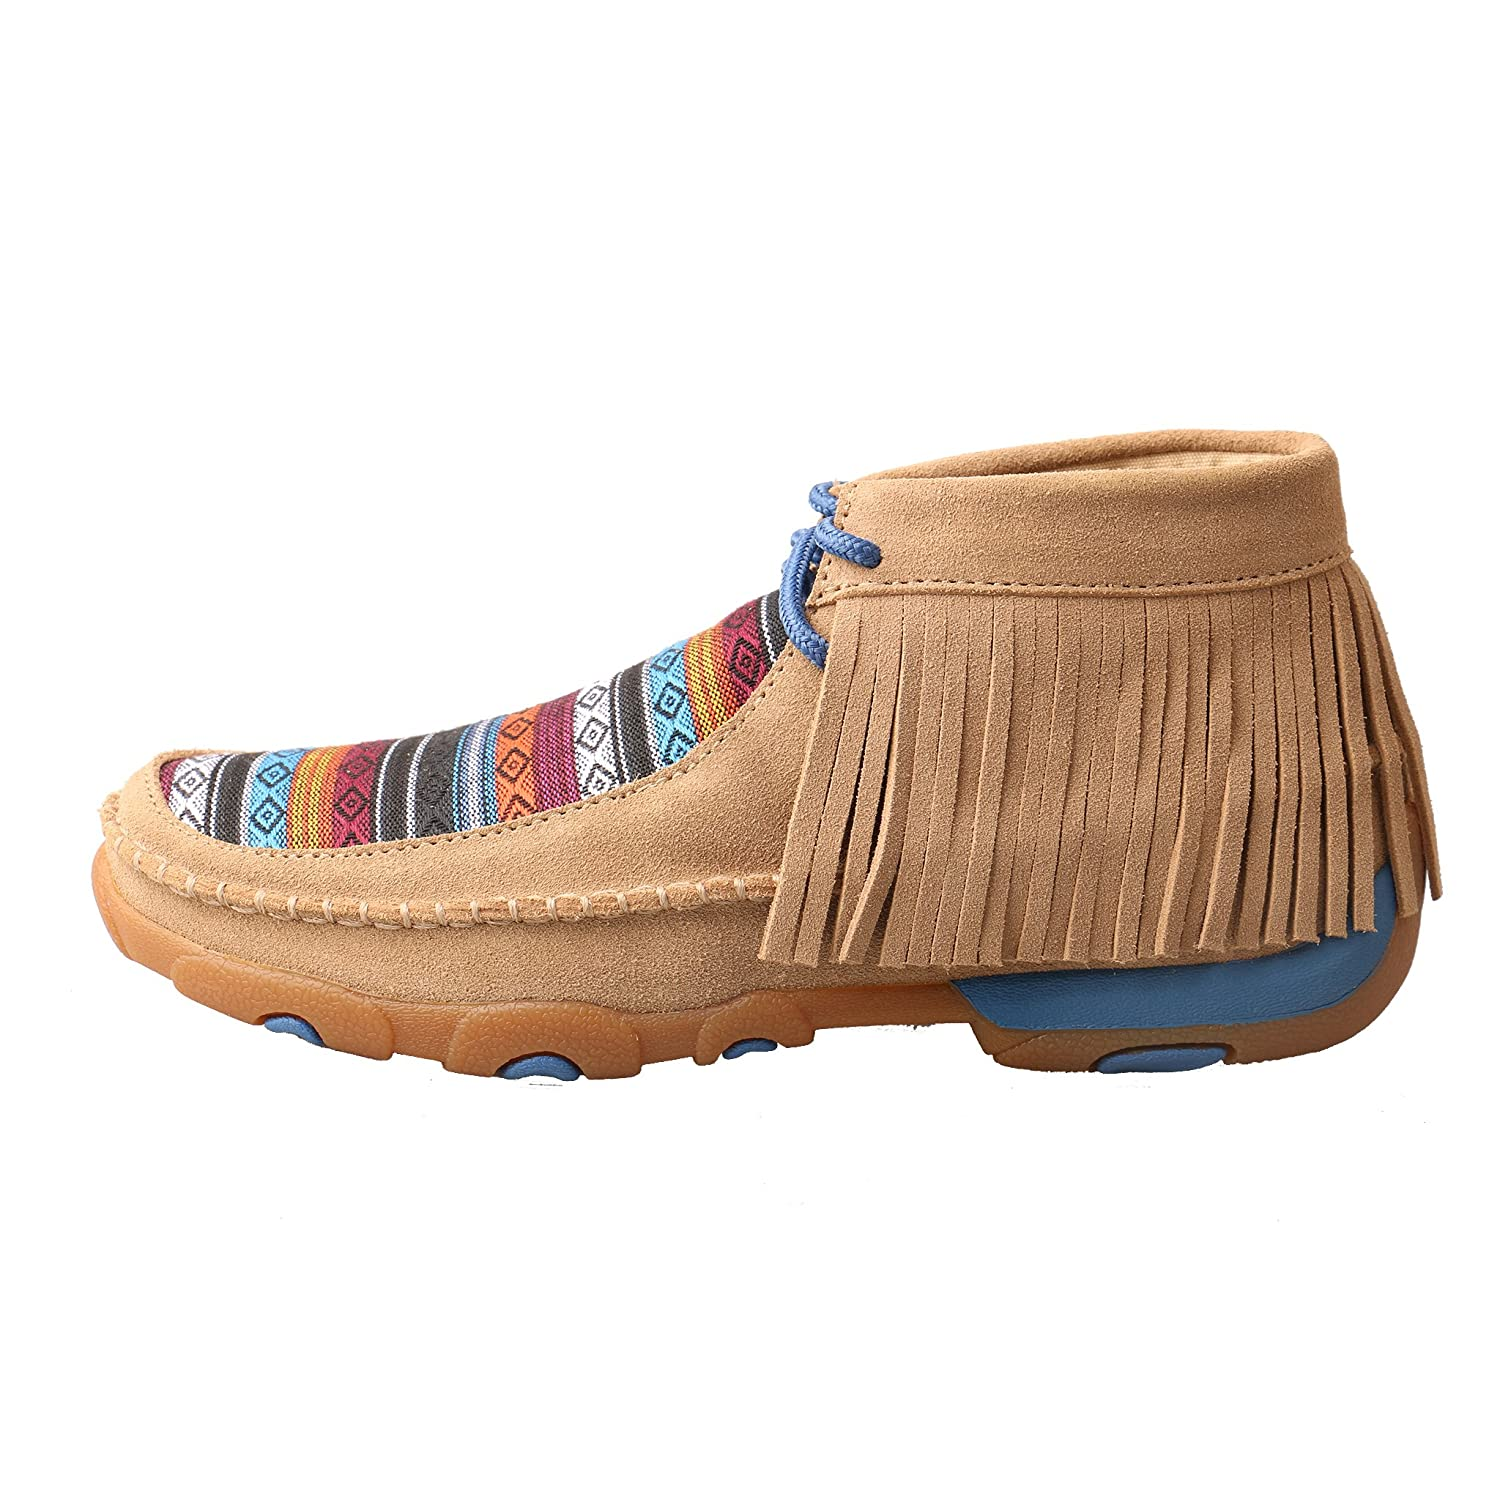 Twisted X Sole Women's Leather Lace-up Rubber Sole X Driving Moccasins - Serape/Fringe B072KL544R 10 B(M) US|Serape/Fringe ce117a